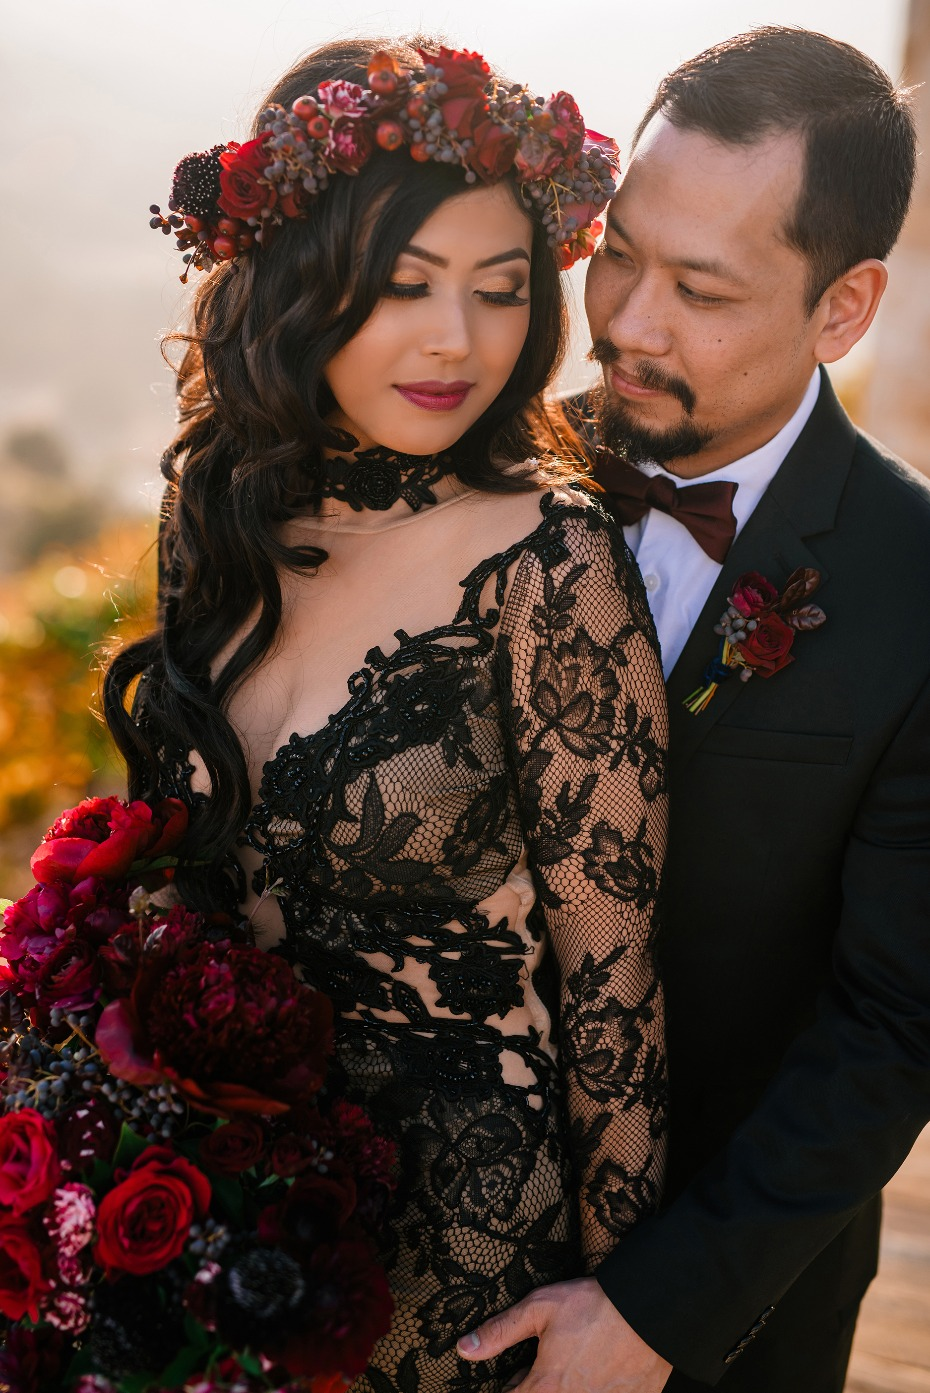 Gorgeous elopement in Malibu